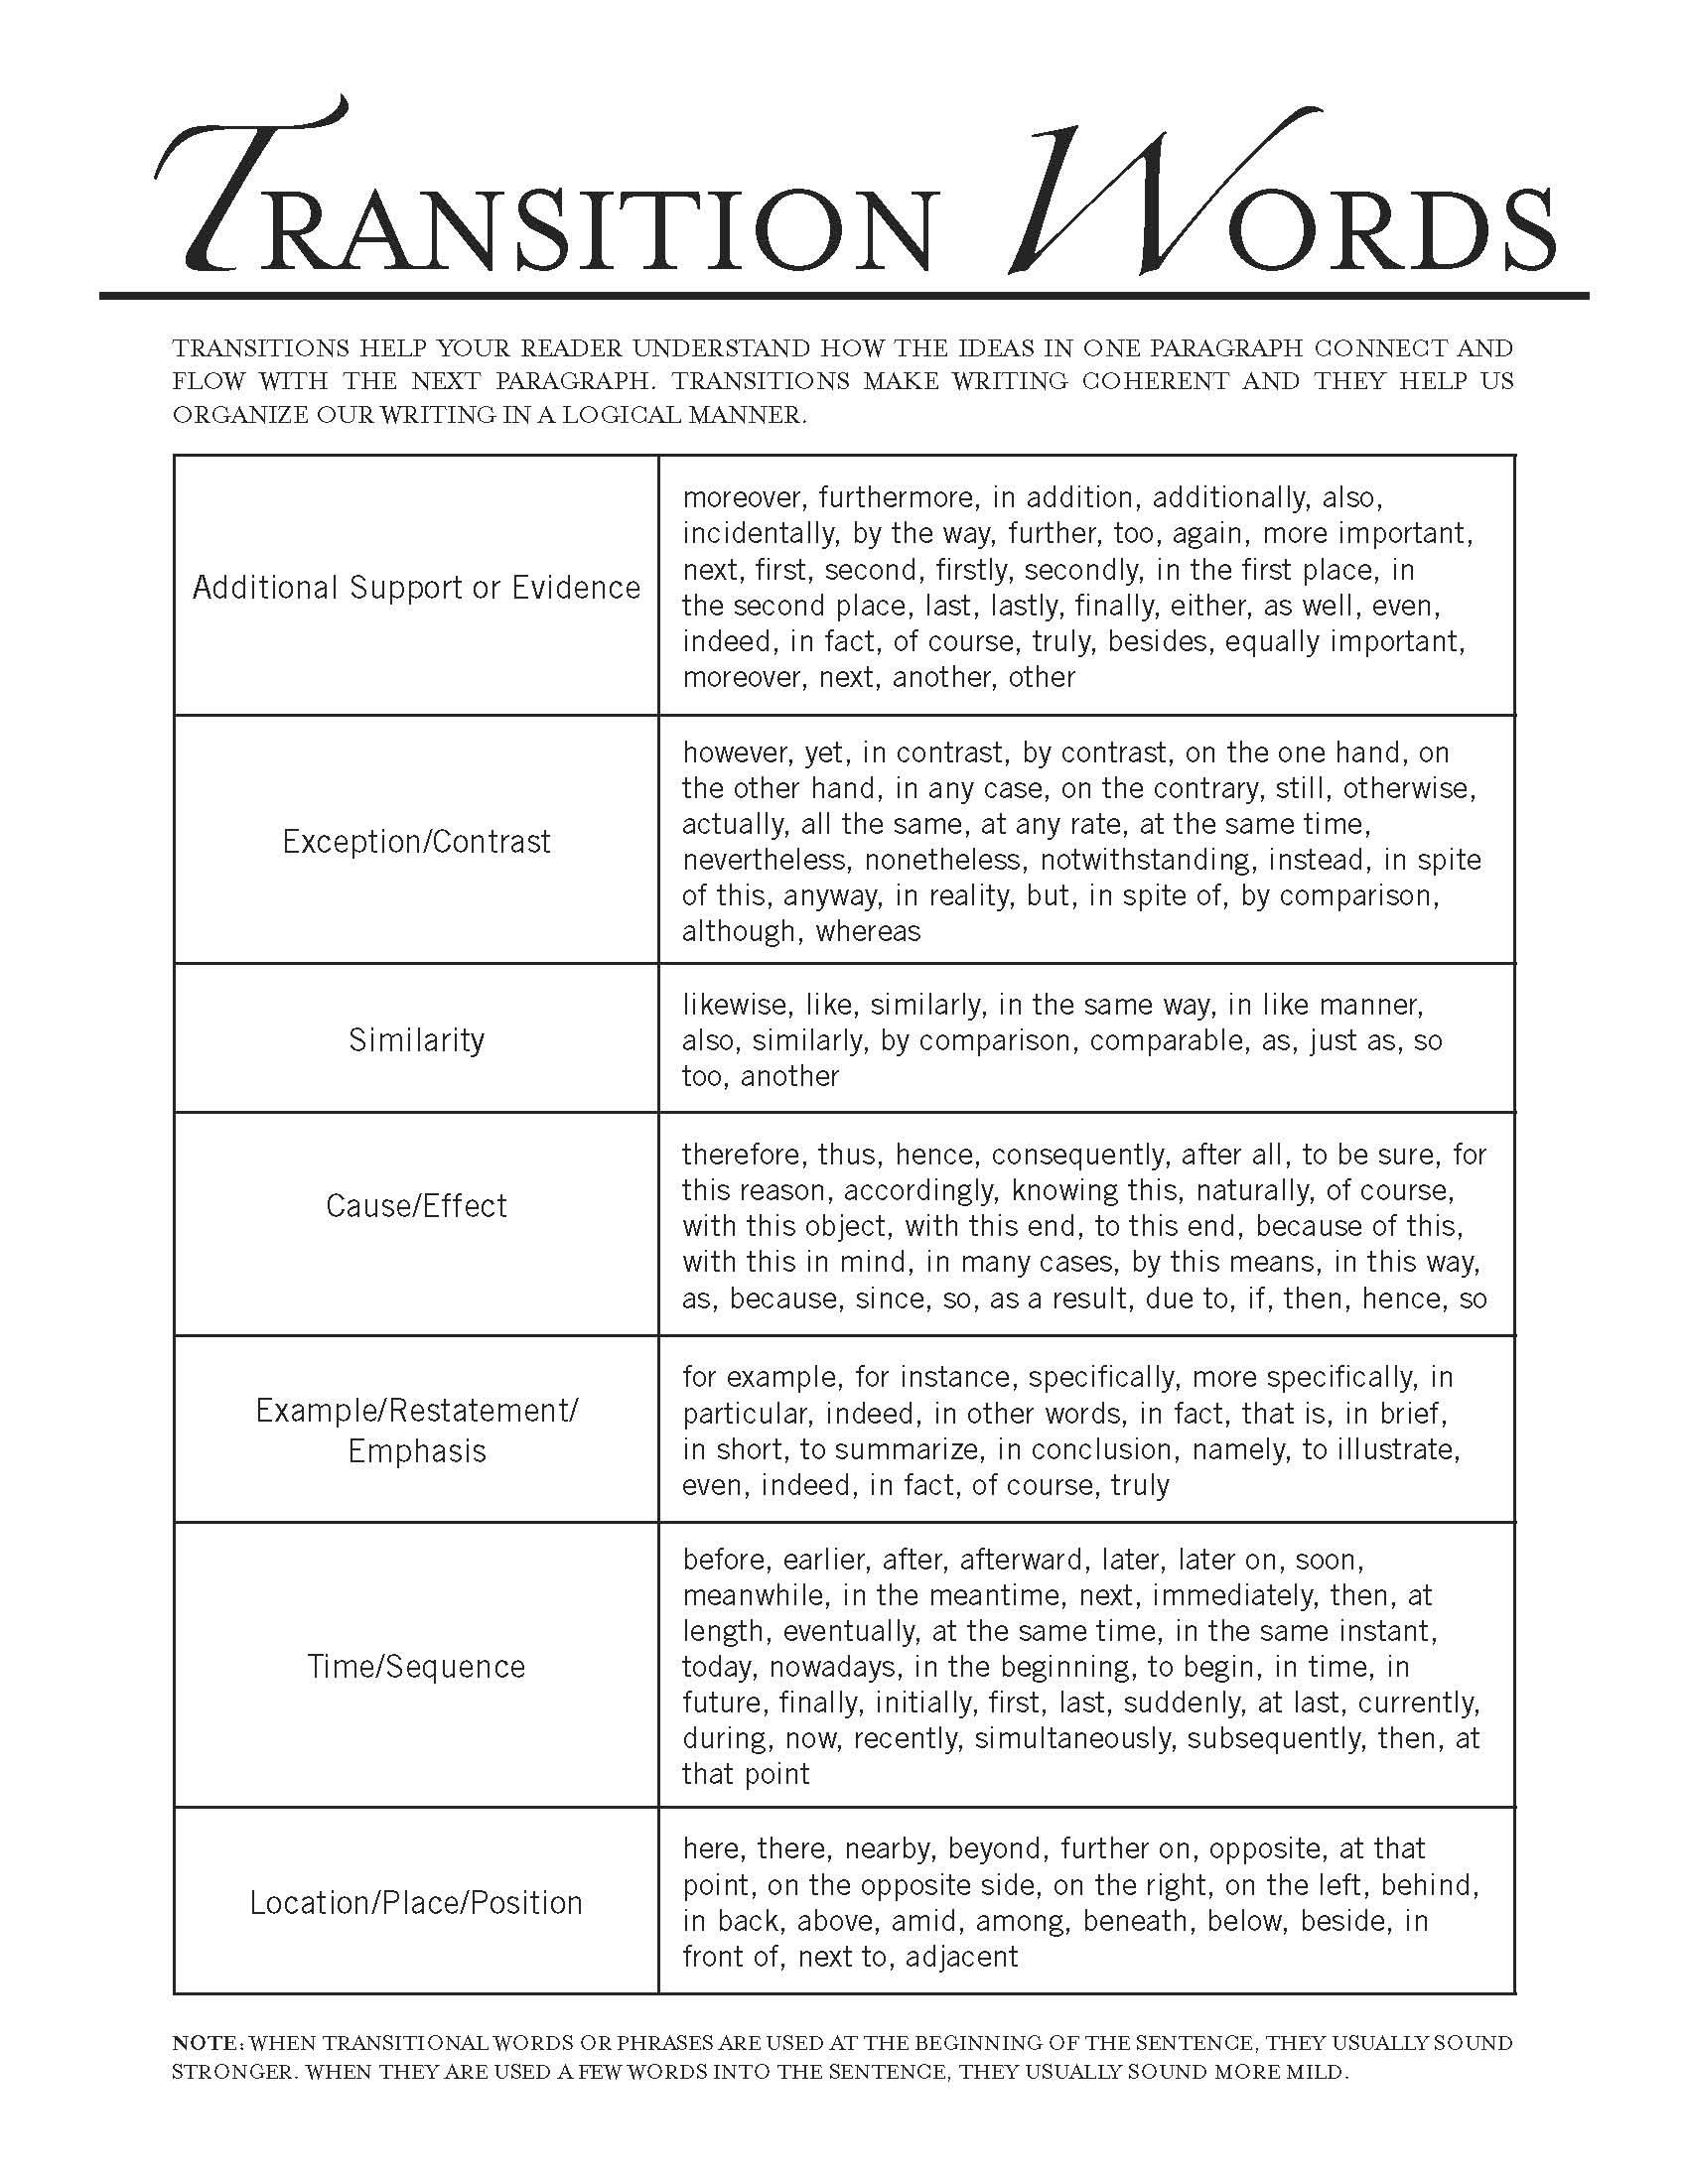 002 Essay Example Transition Words For Essays Rare Paragraph Pdf In Spanish 4th Grade Full